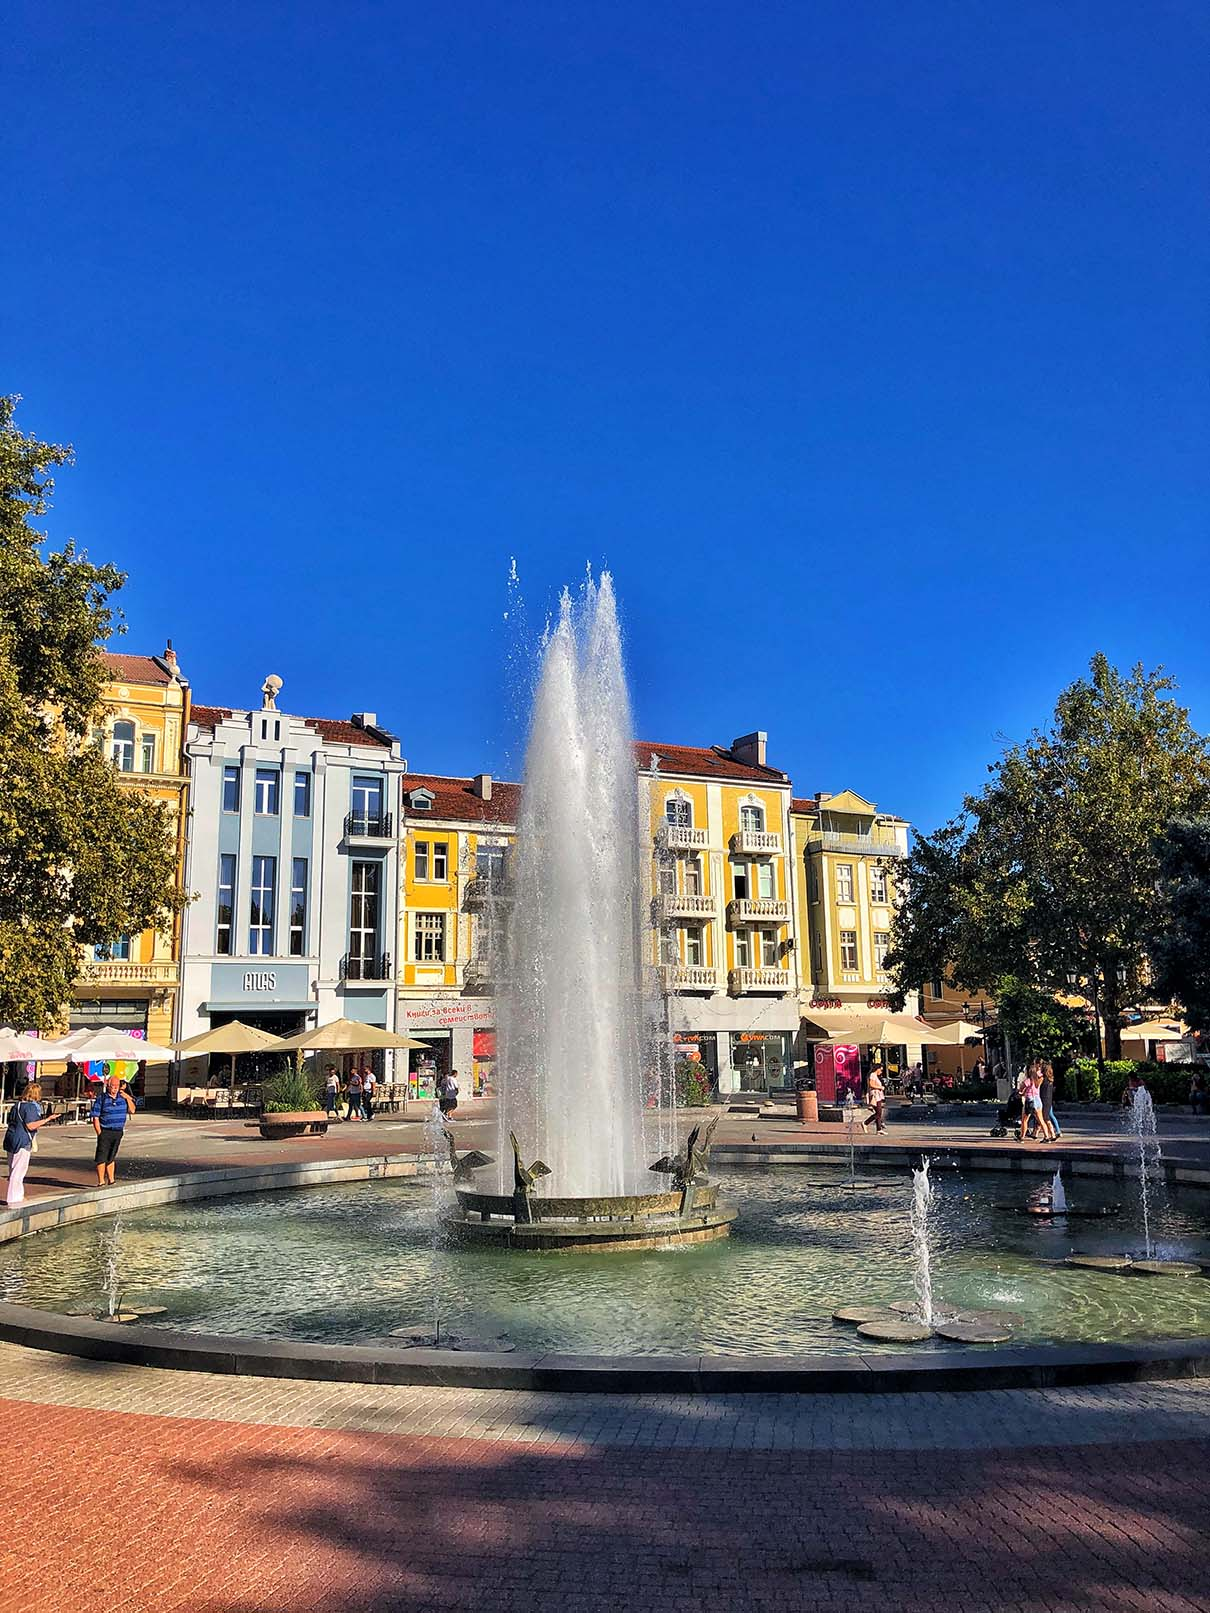 plovdiv center square